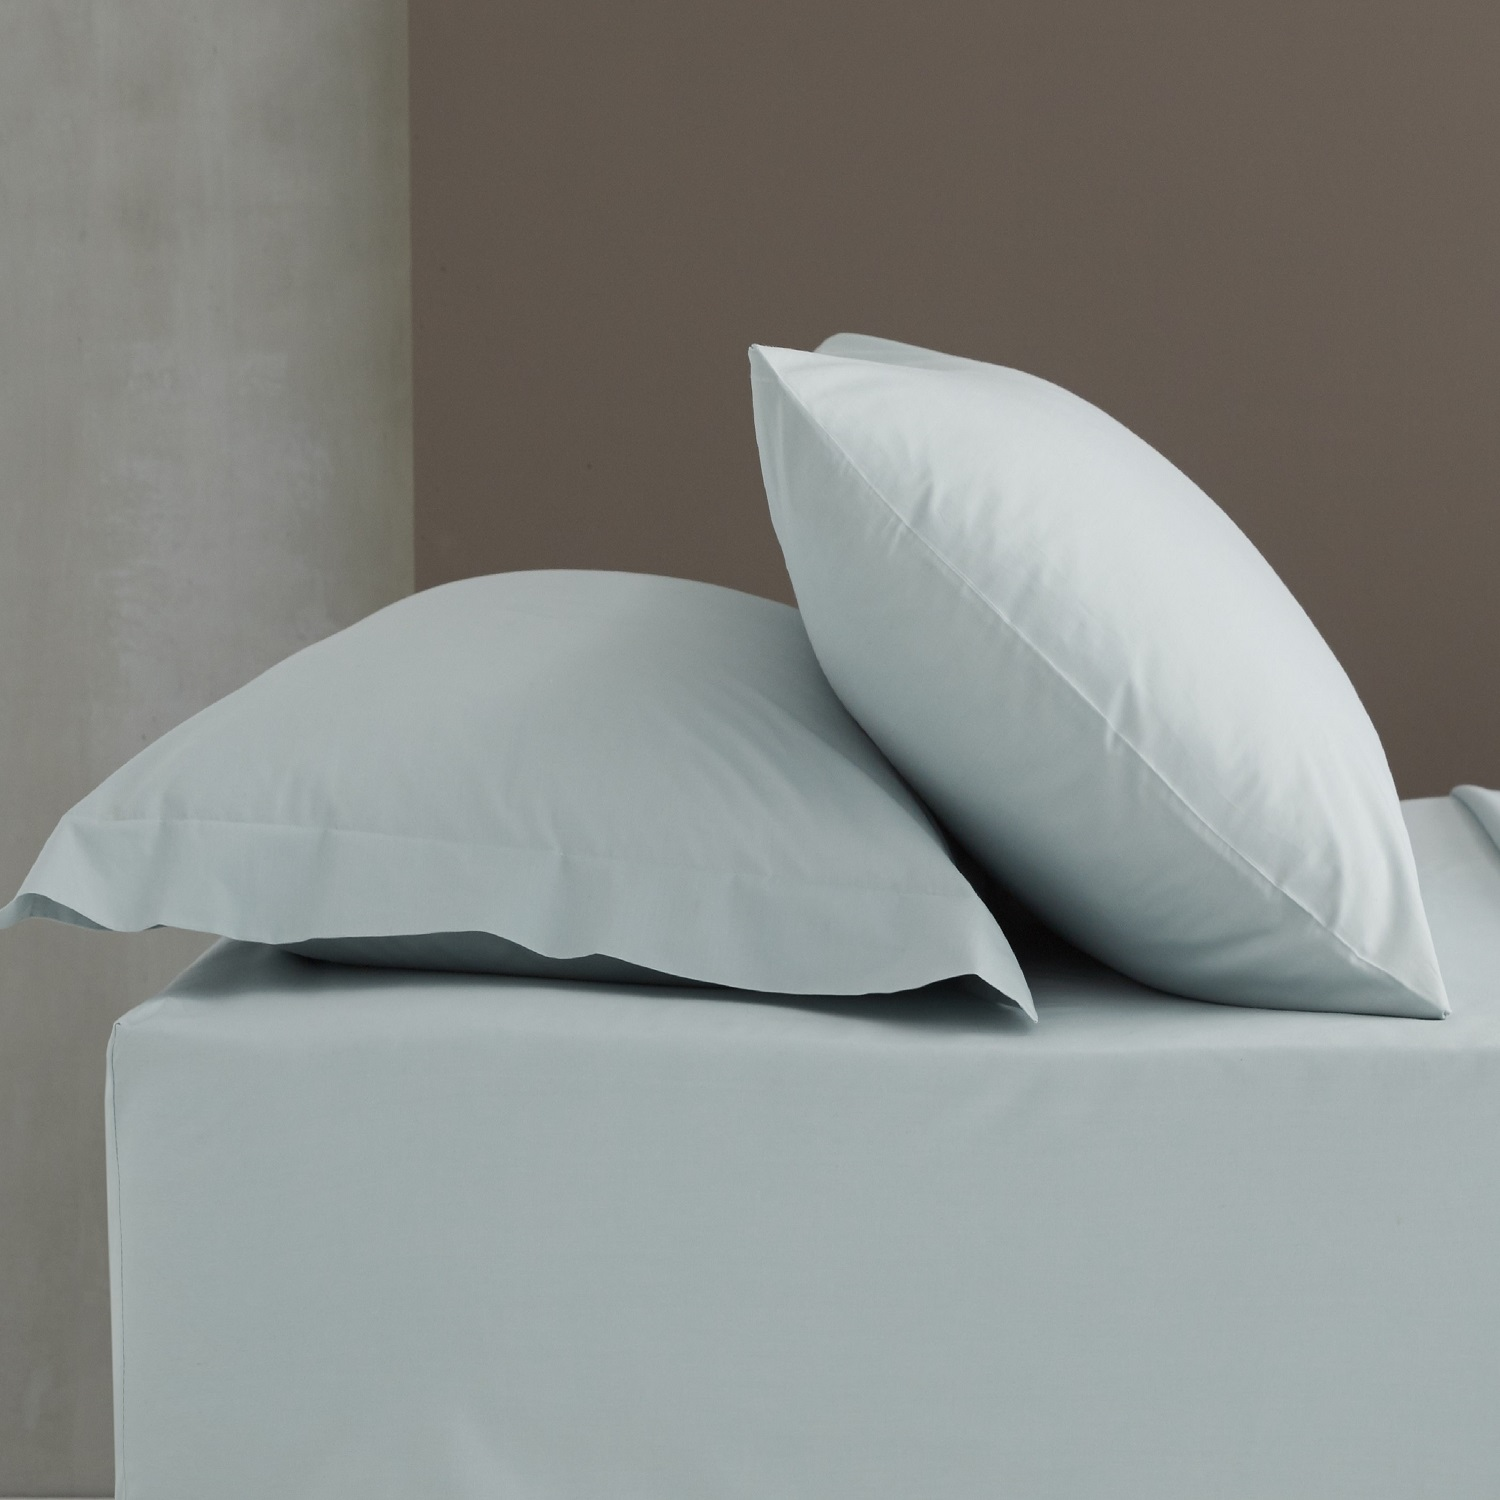 So Soft Percale Lençol Capa Duckegg Catherine Lansfield